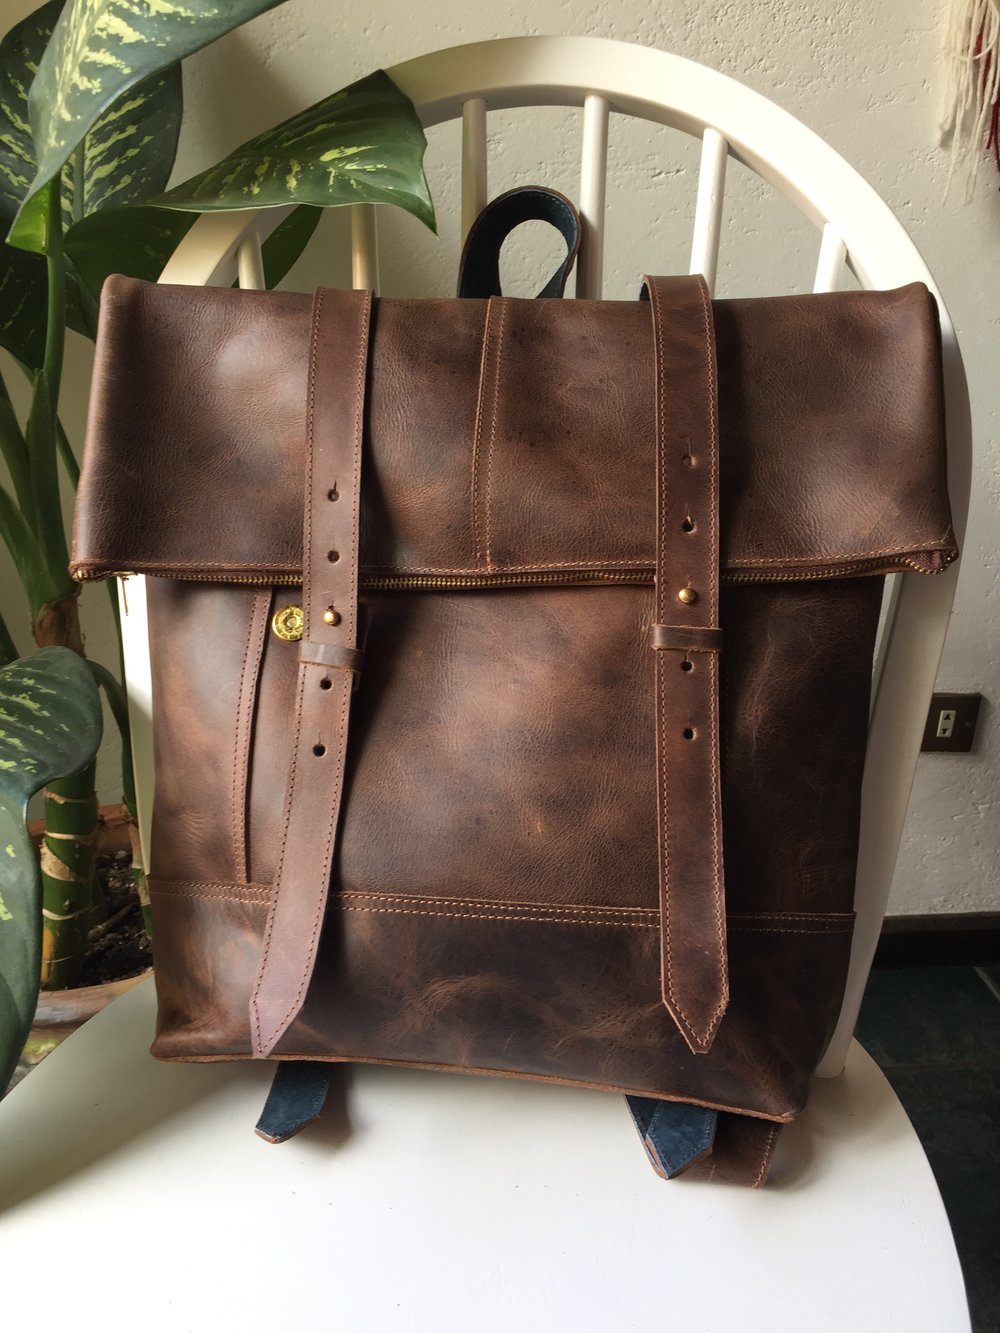 Castaño brown with blue leather detailing